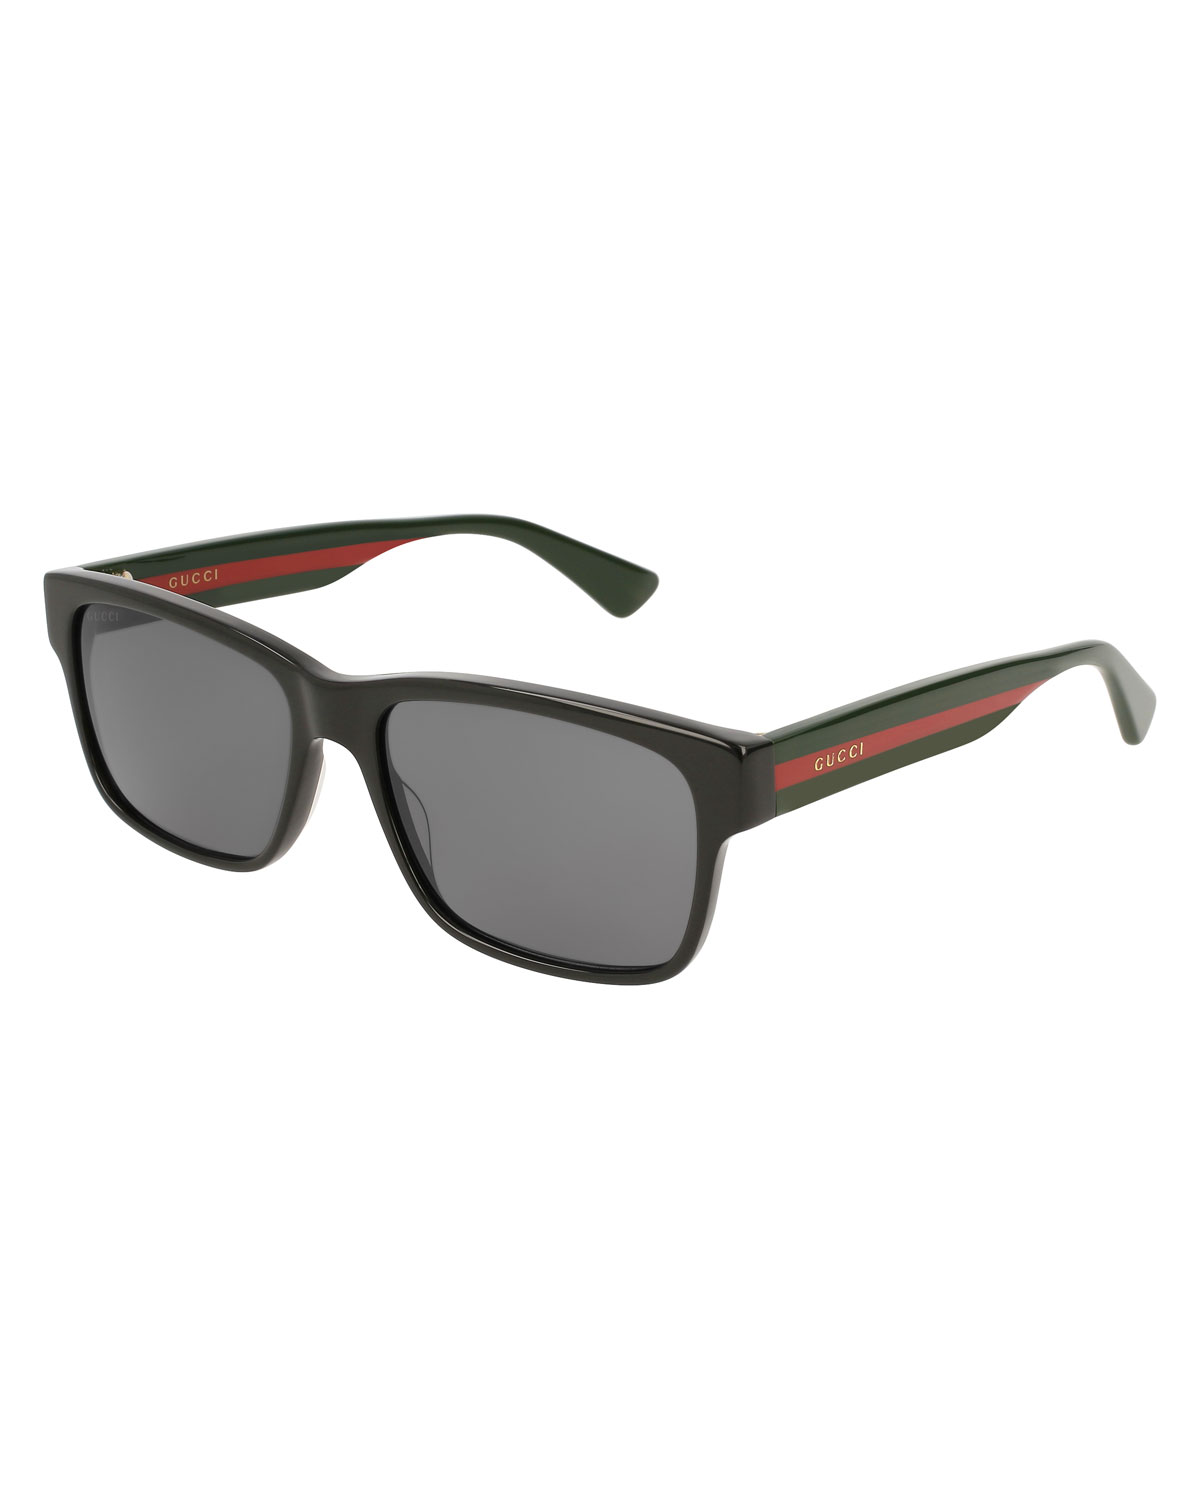 753e210e8ae80 Gucci Square Acetate Sunglasses with Signature Web